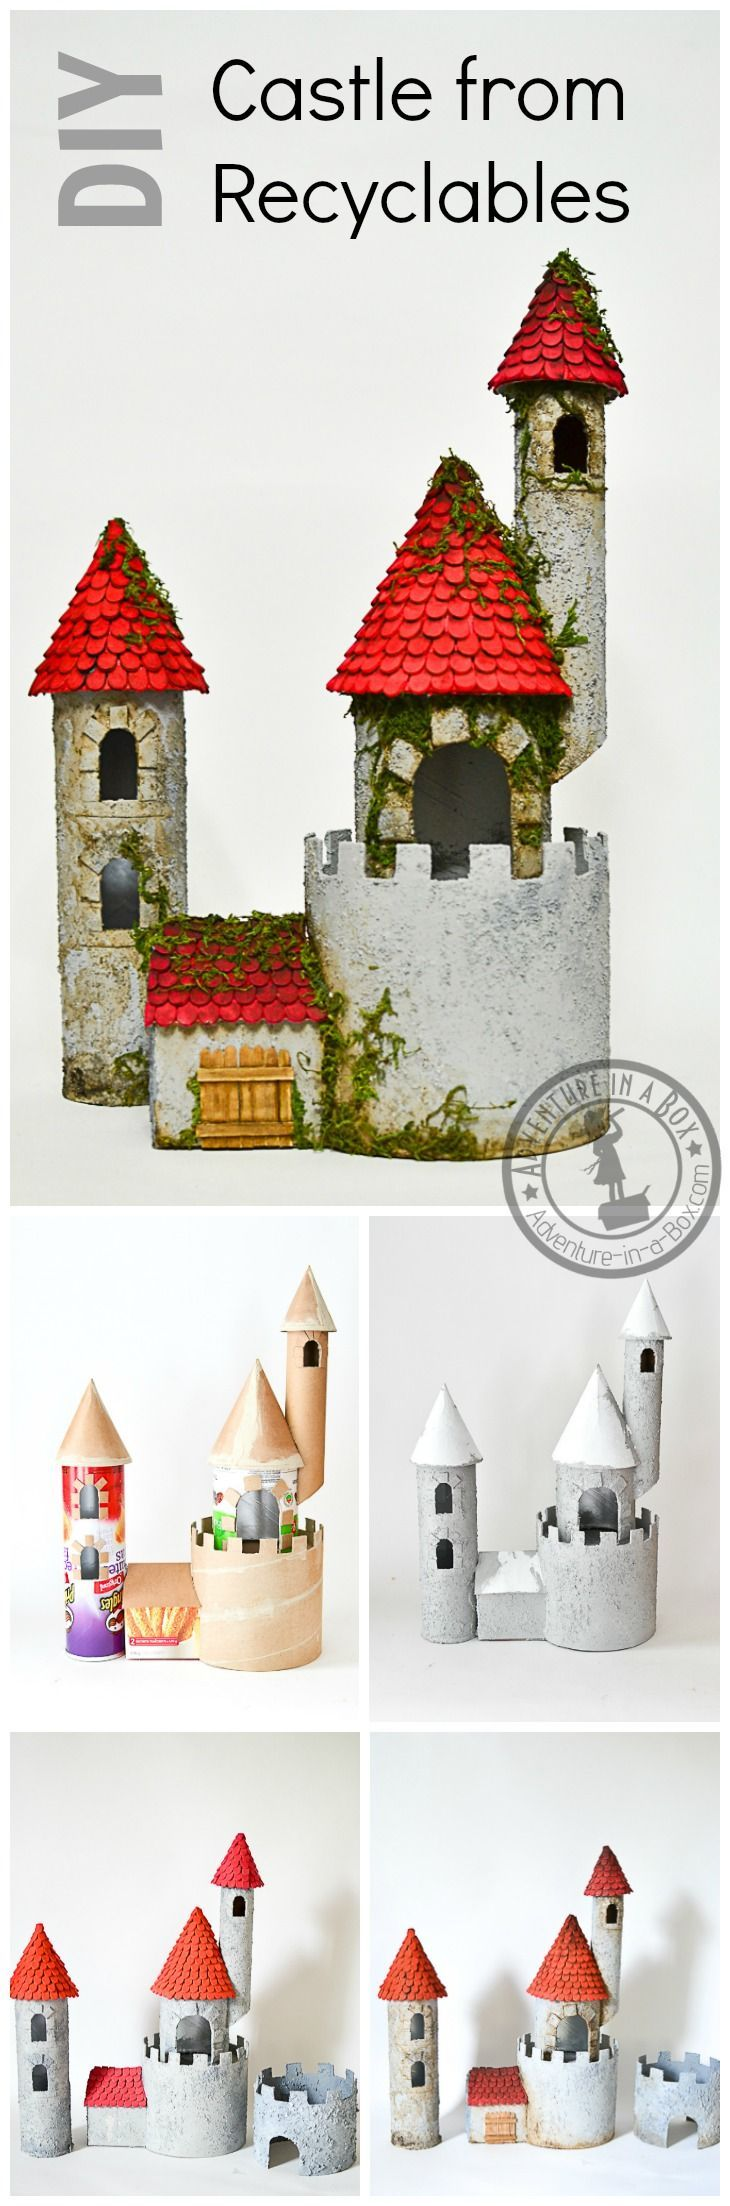 Diy make a castle from recyclable materials toys fun for Castle made out of cardboard